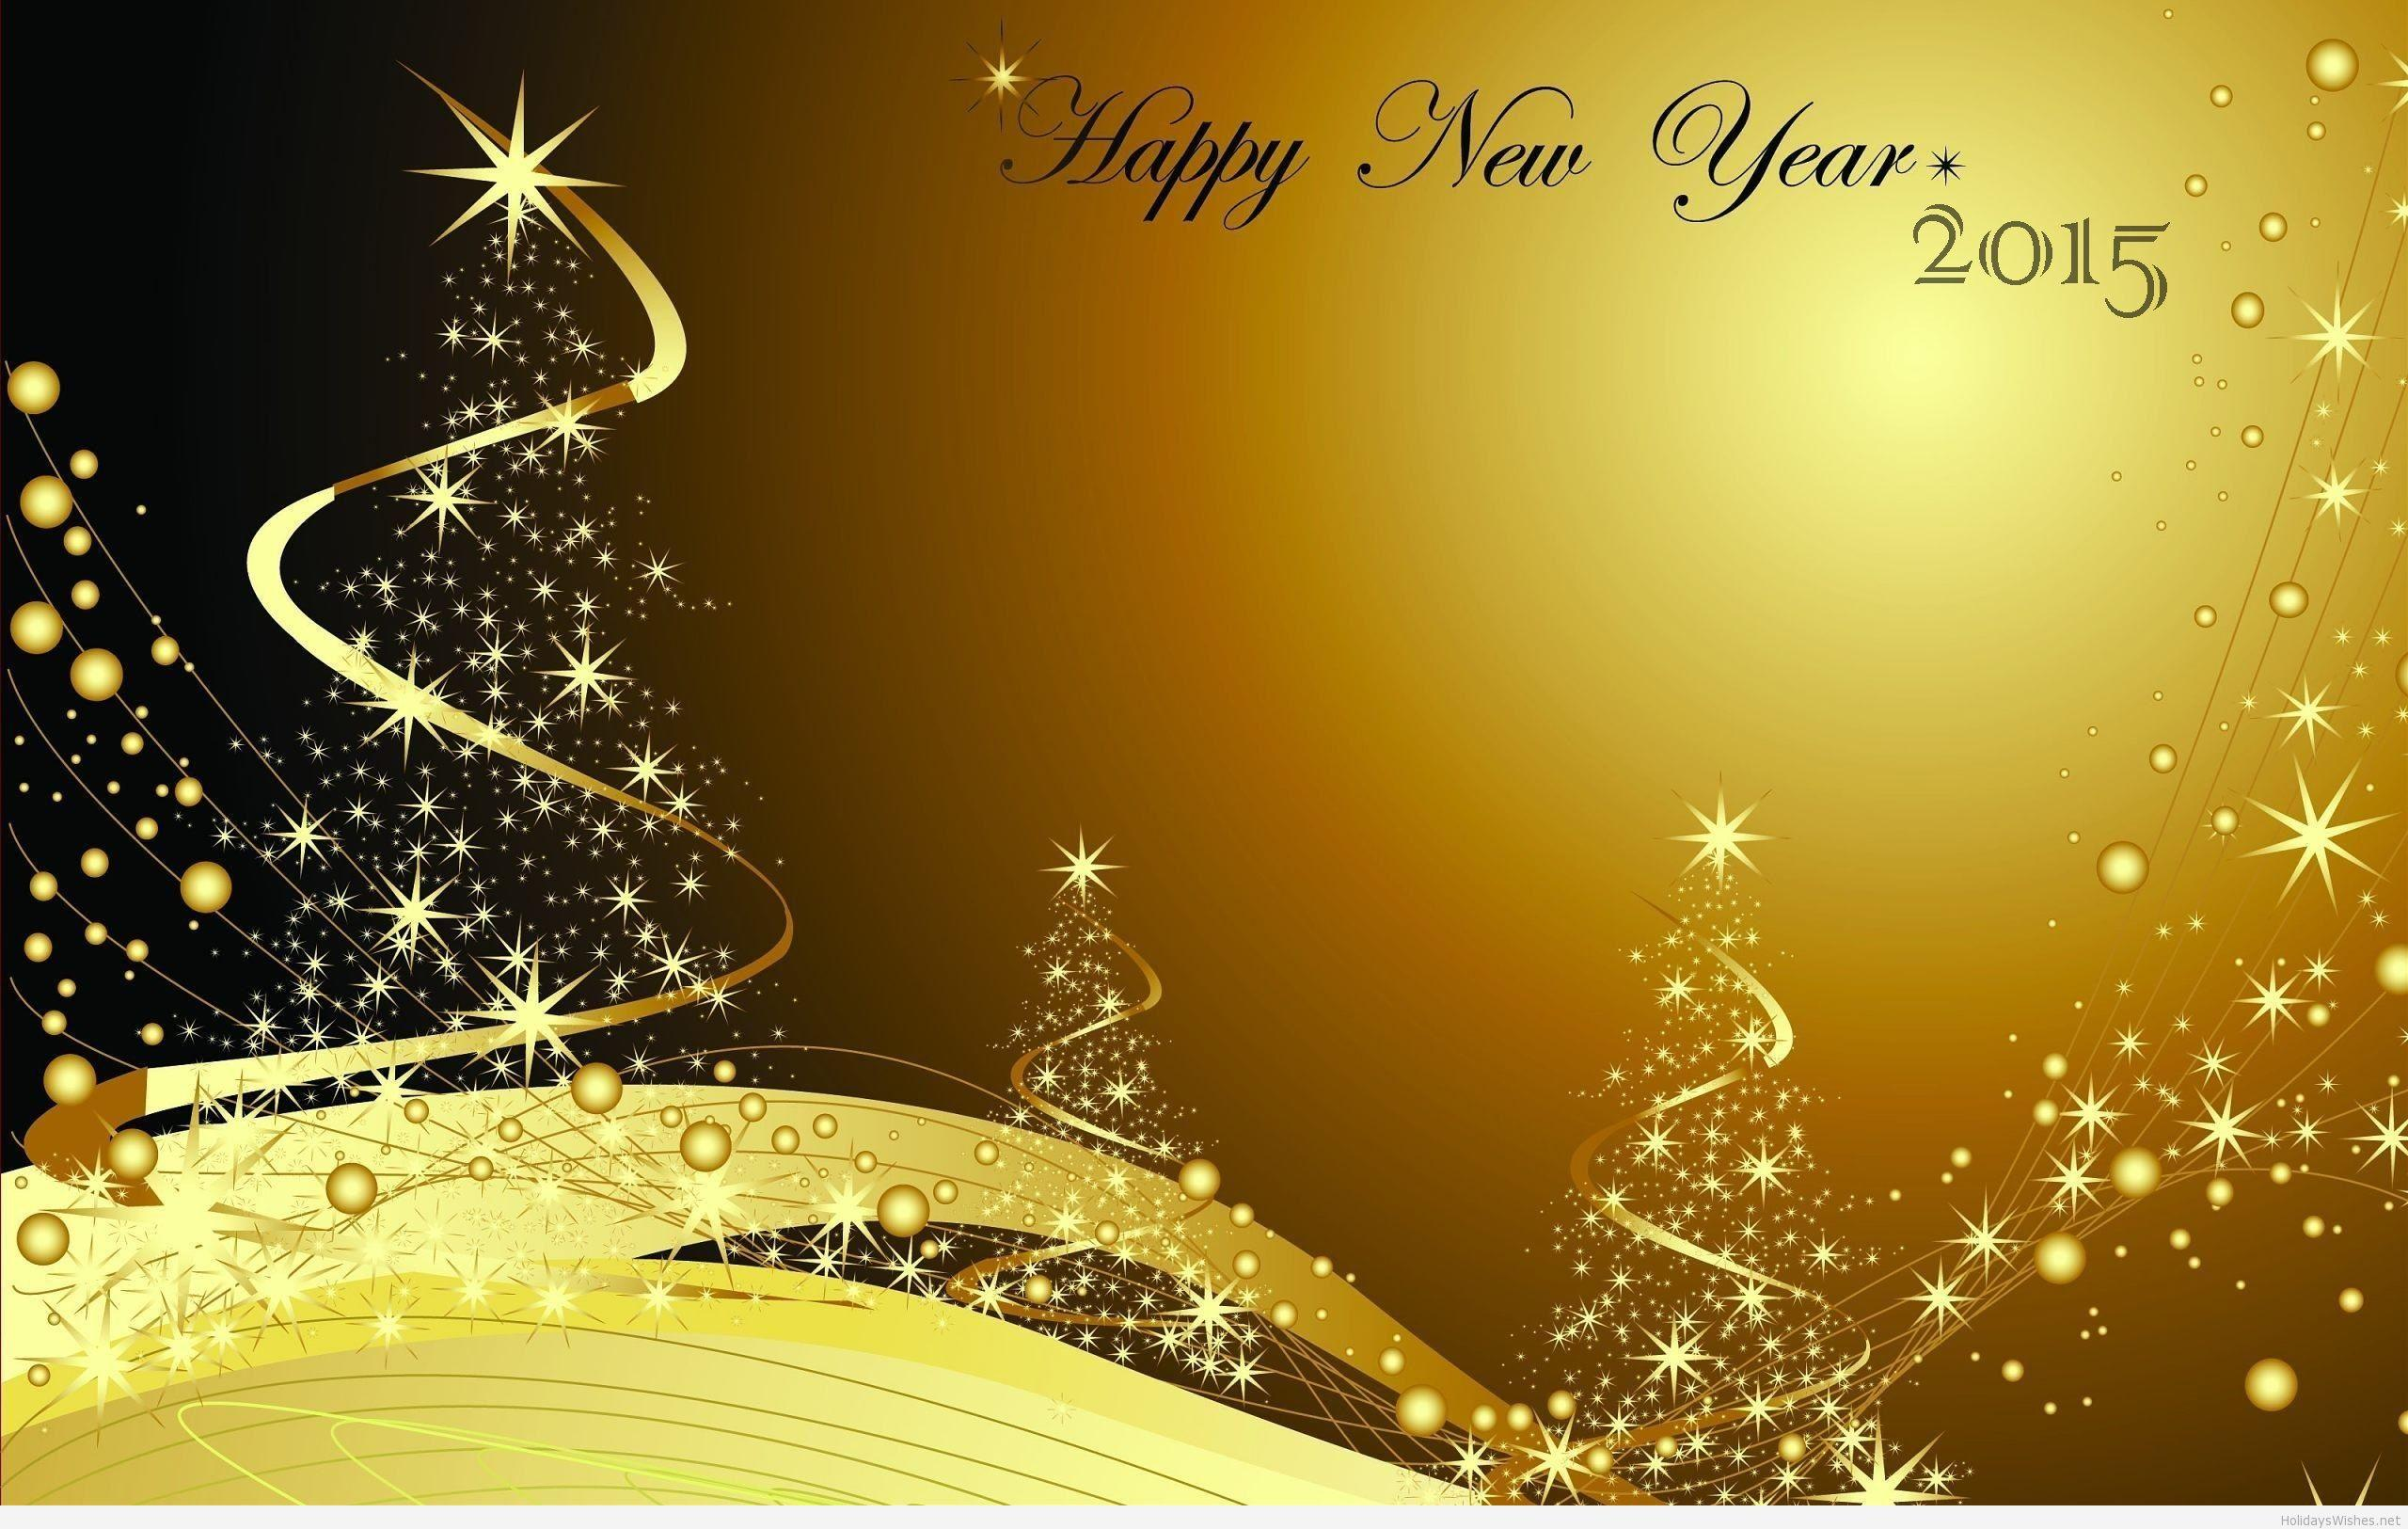 happy new year backgrounds wallpaper cave happy new year backgrounds wallpaper cave